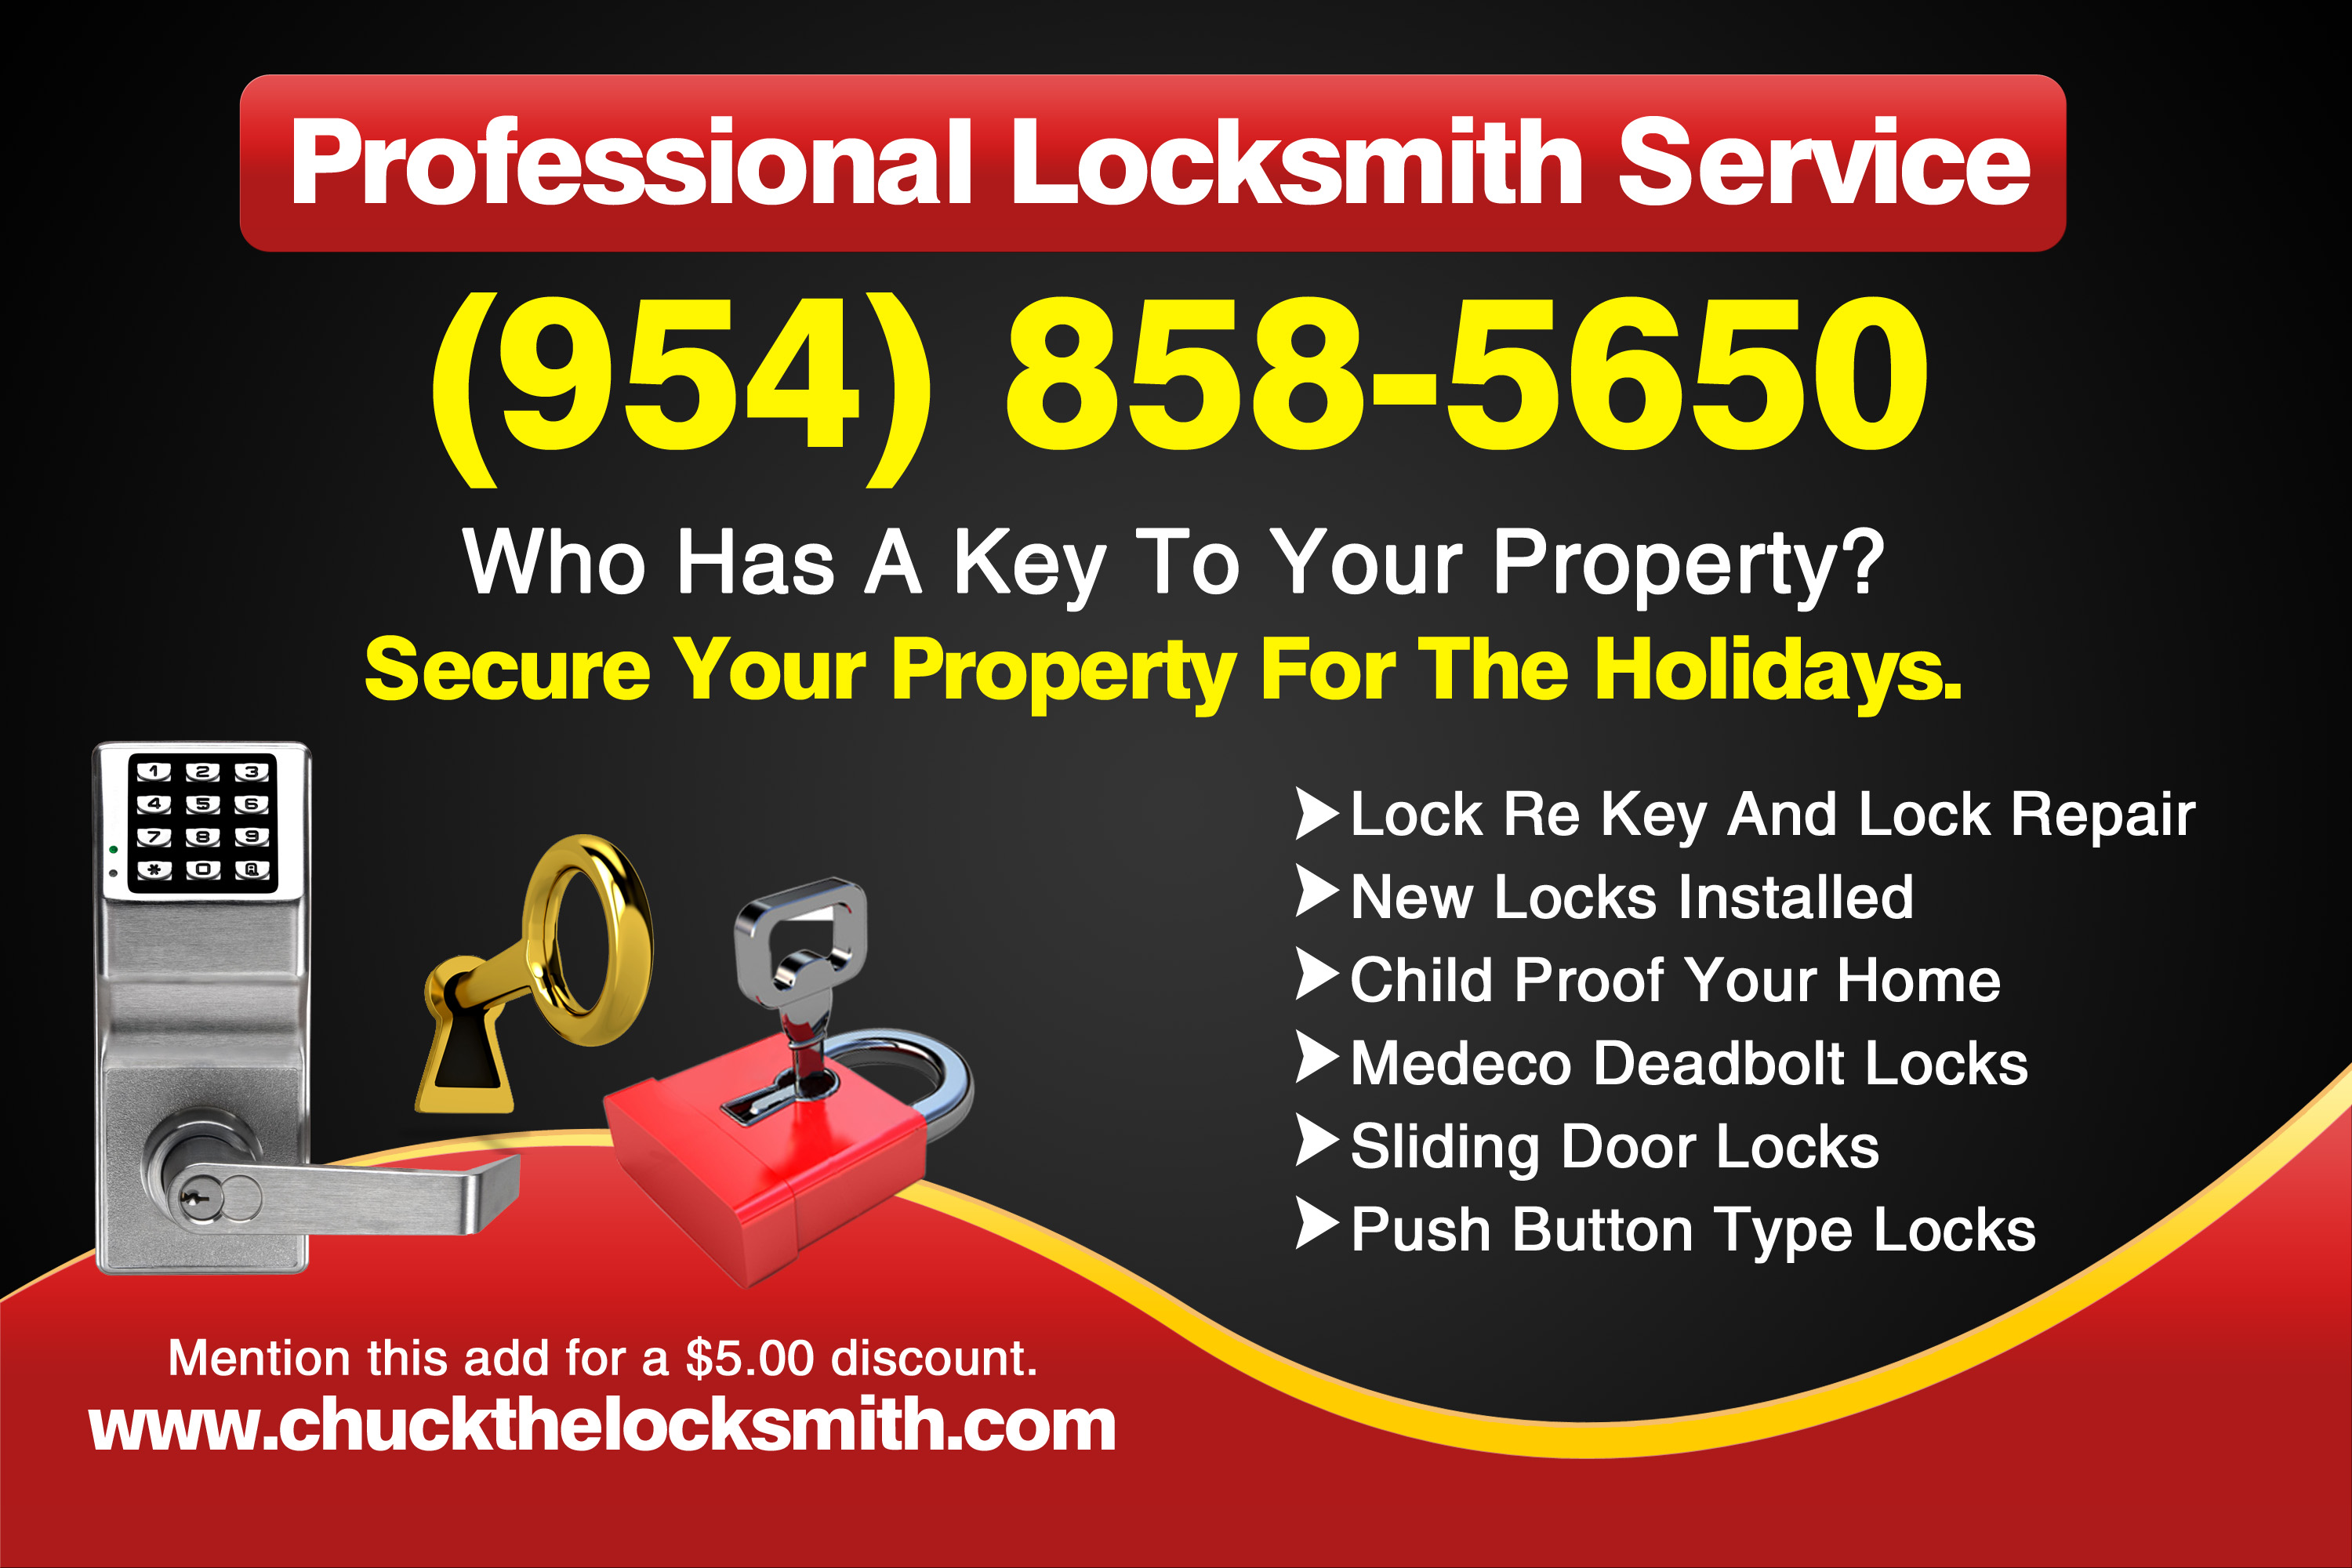 Fort Lauderdale Locksmith Services